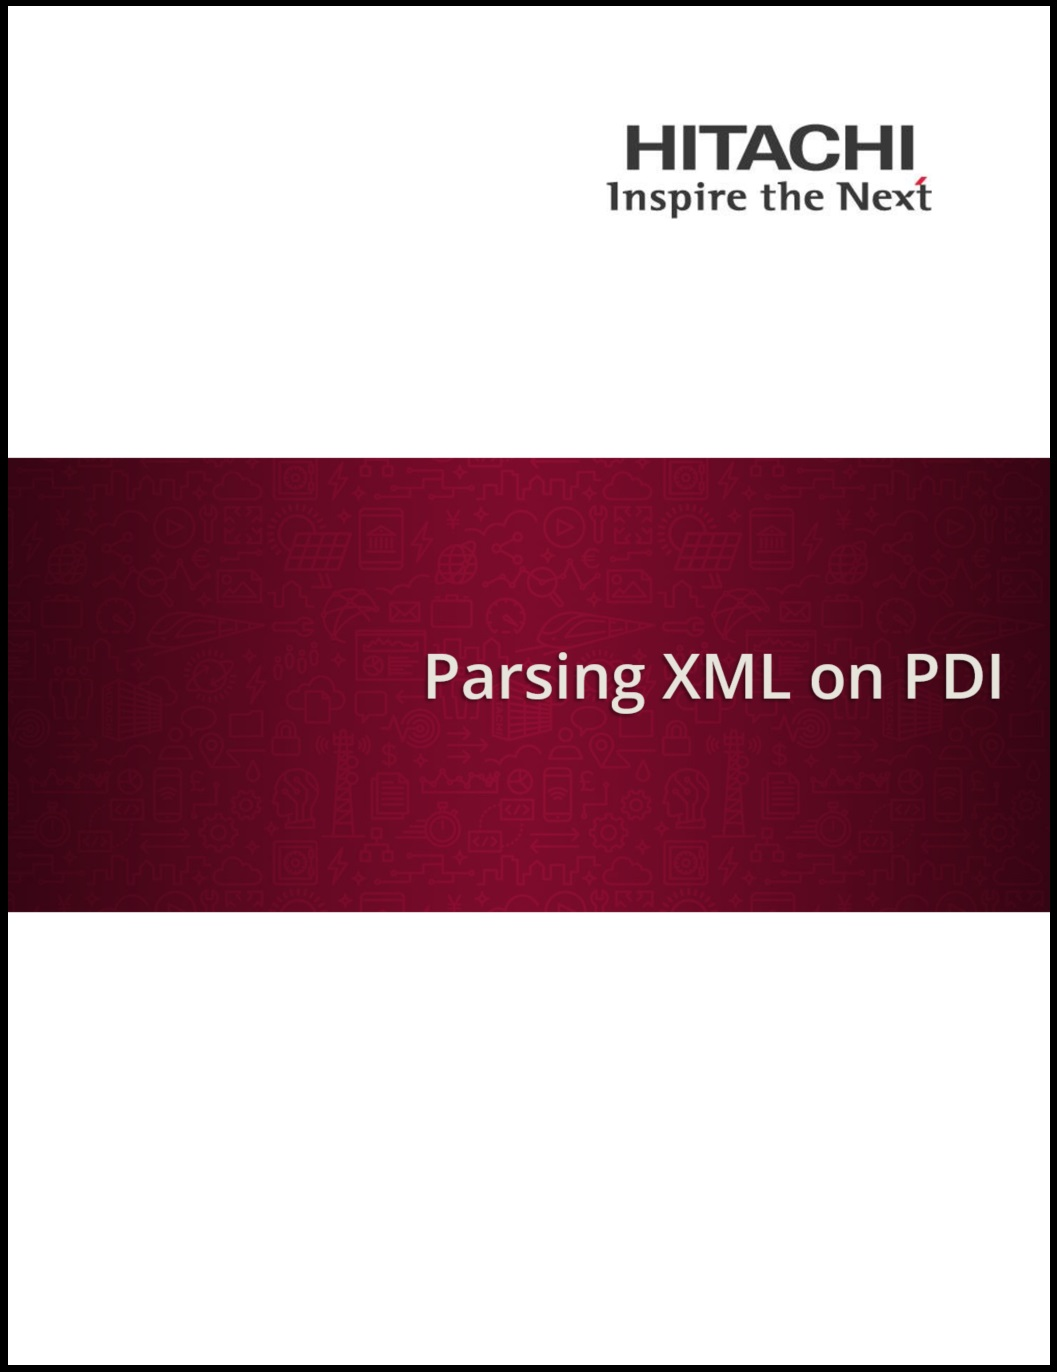 Parsing_XML_on_PDI.jpg